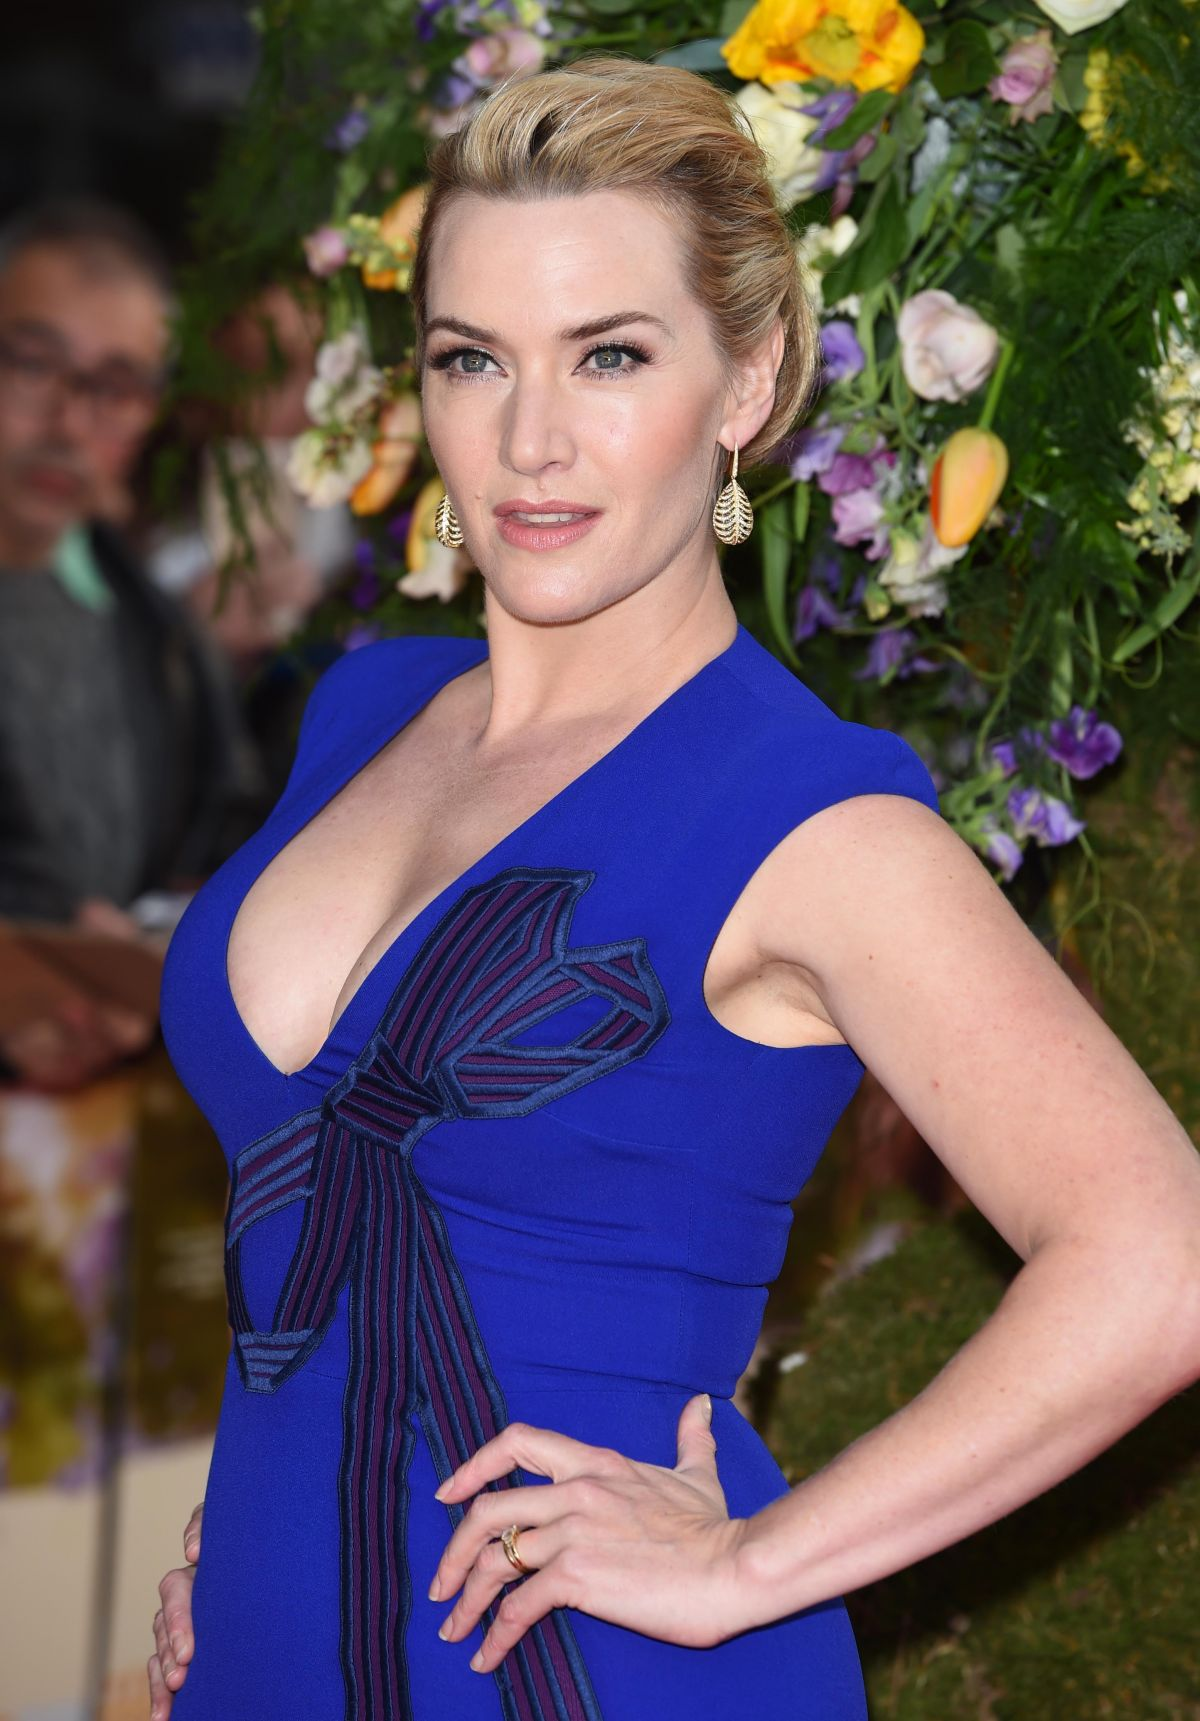 KATE WINSLET at A Little Chaos Premiere in London - HawtCelebs